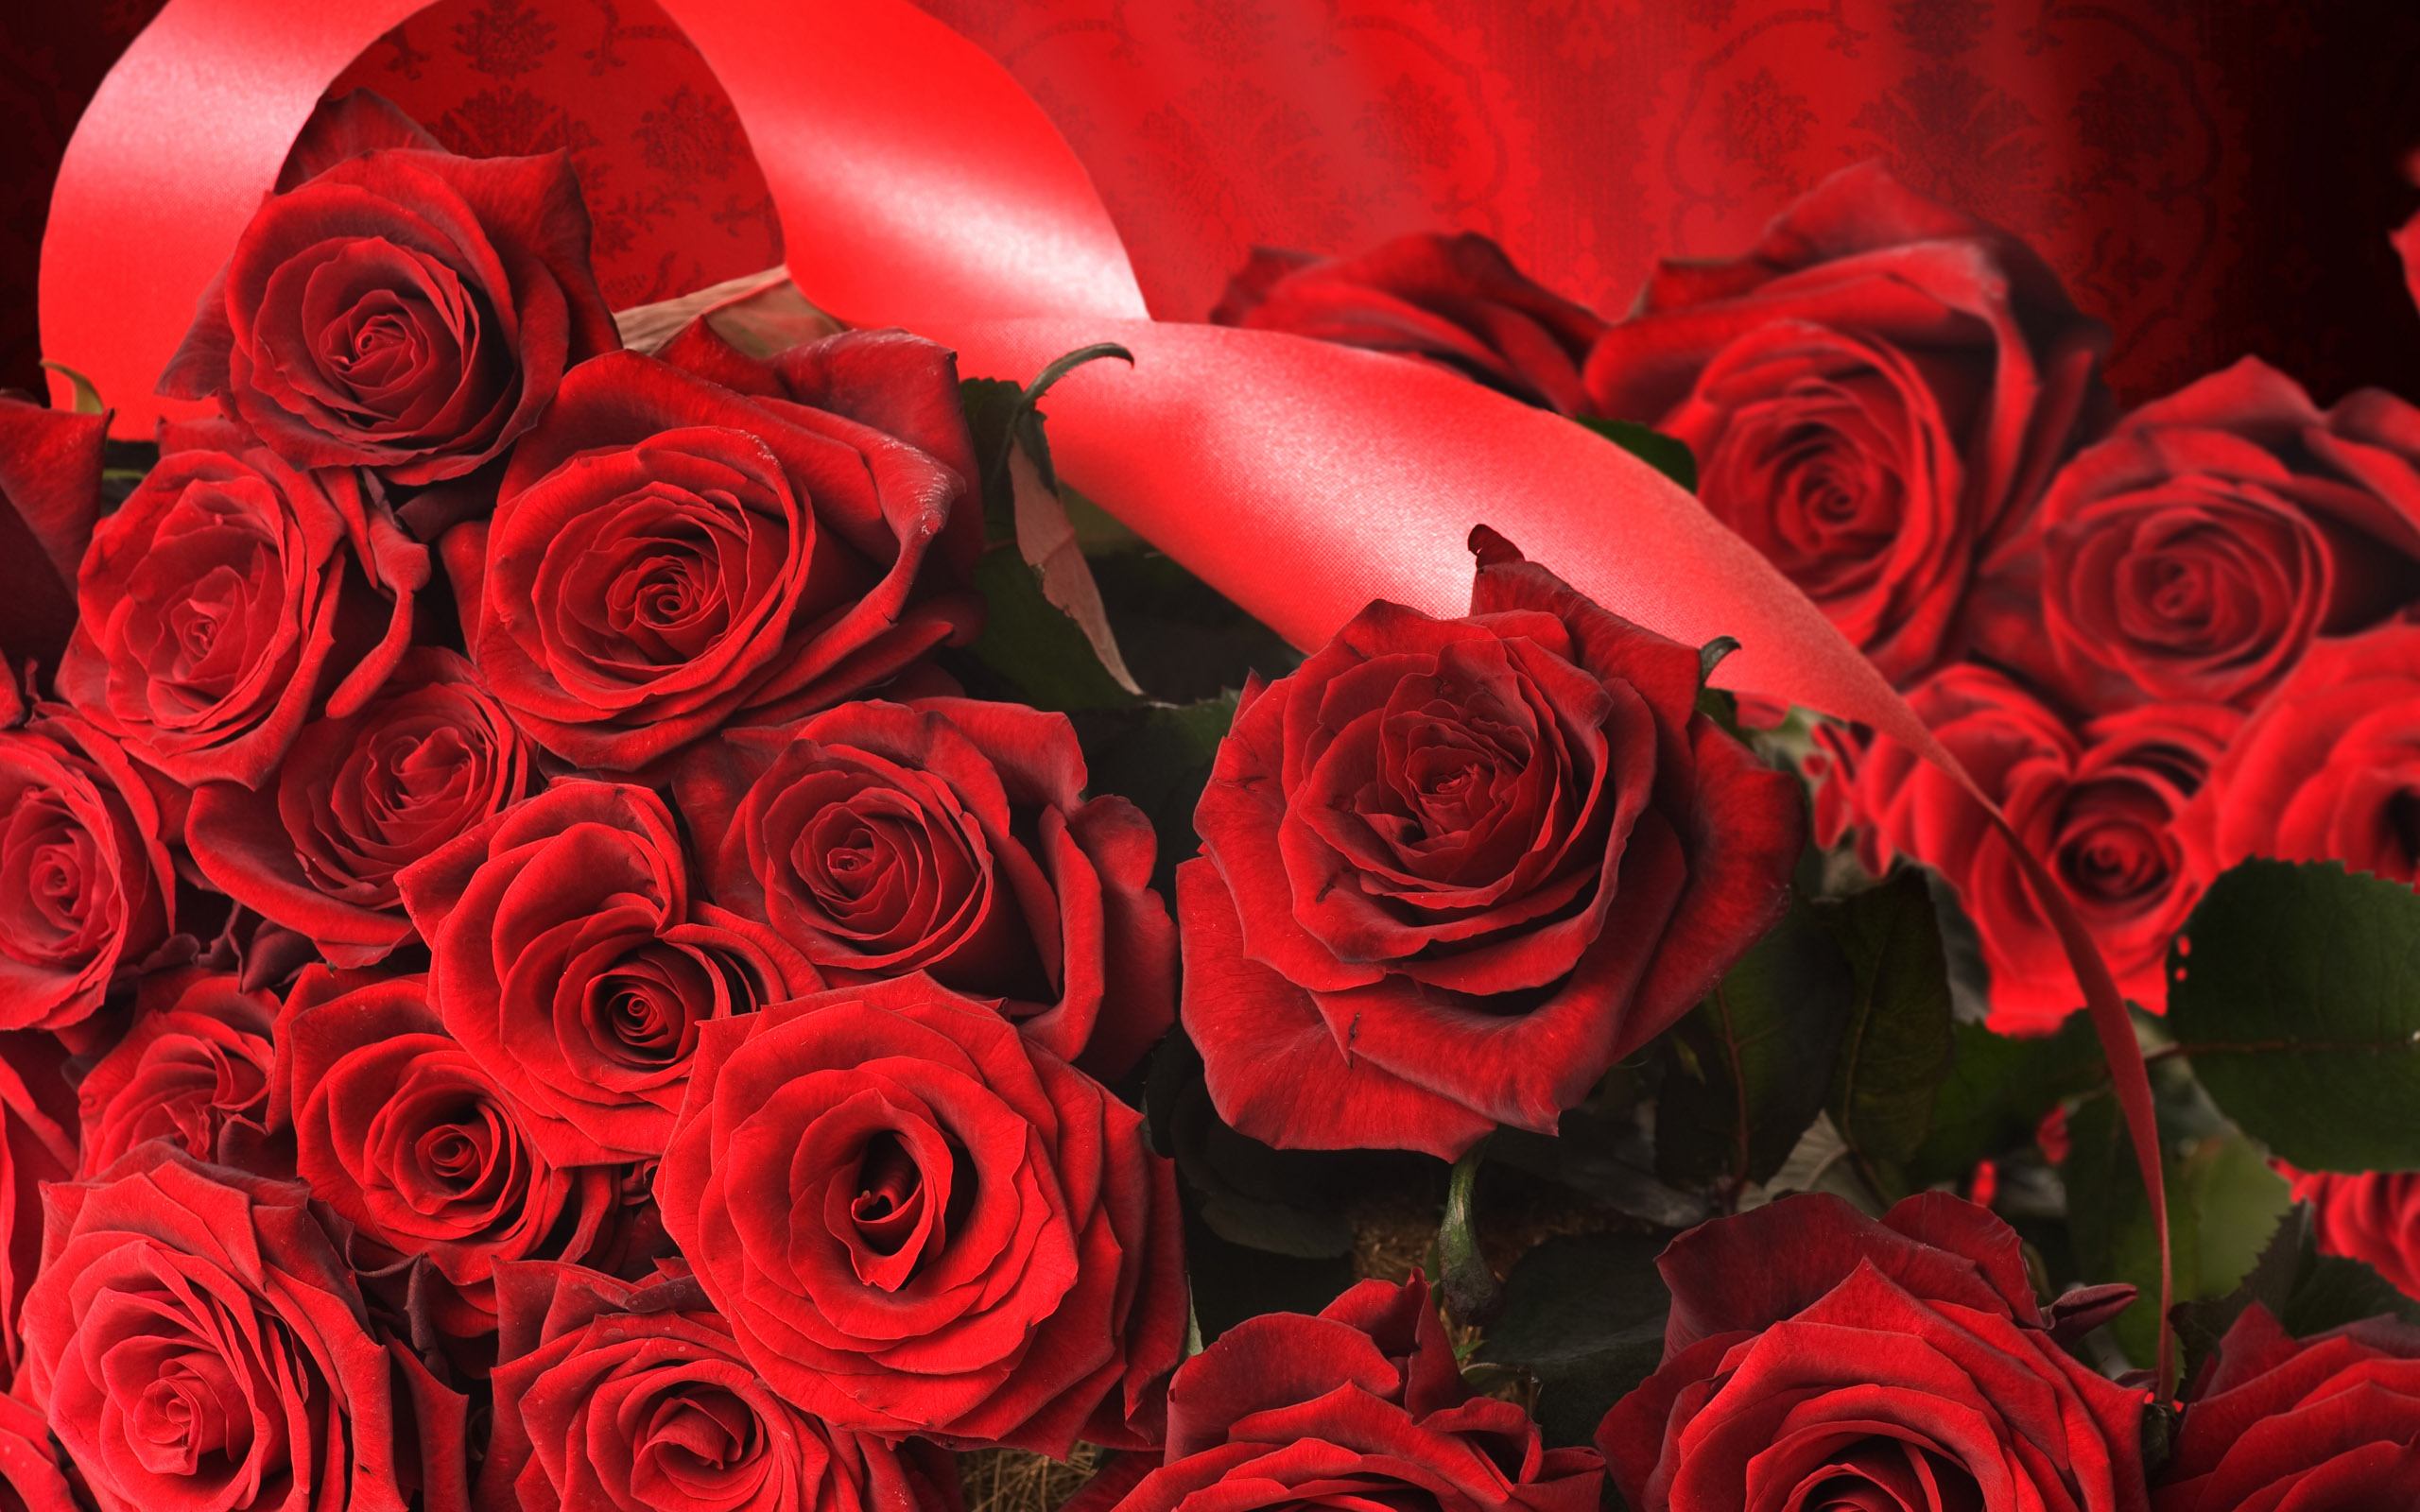 Rozen wallpapers - Red rose flower hd images ...